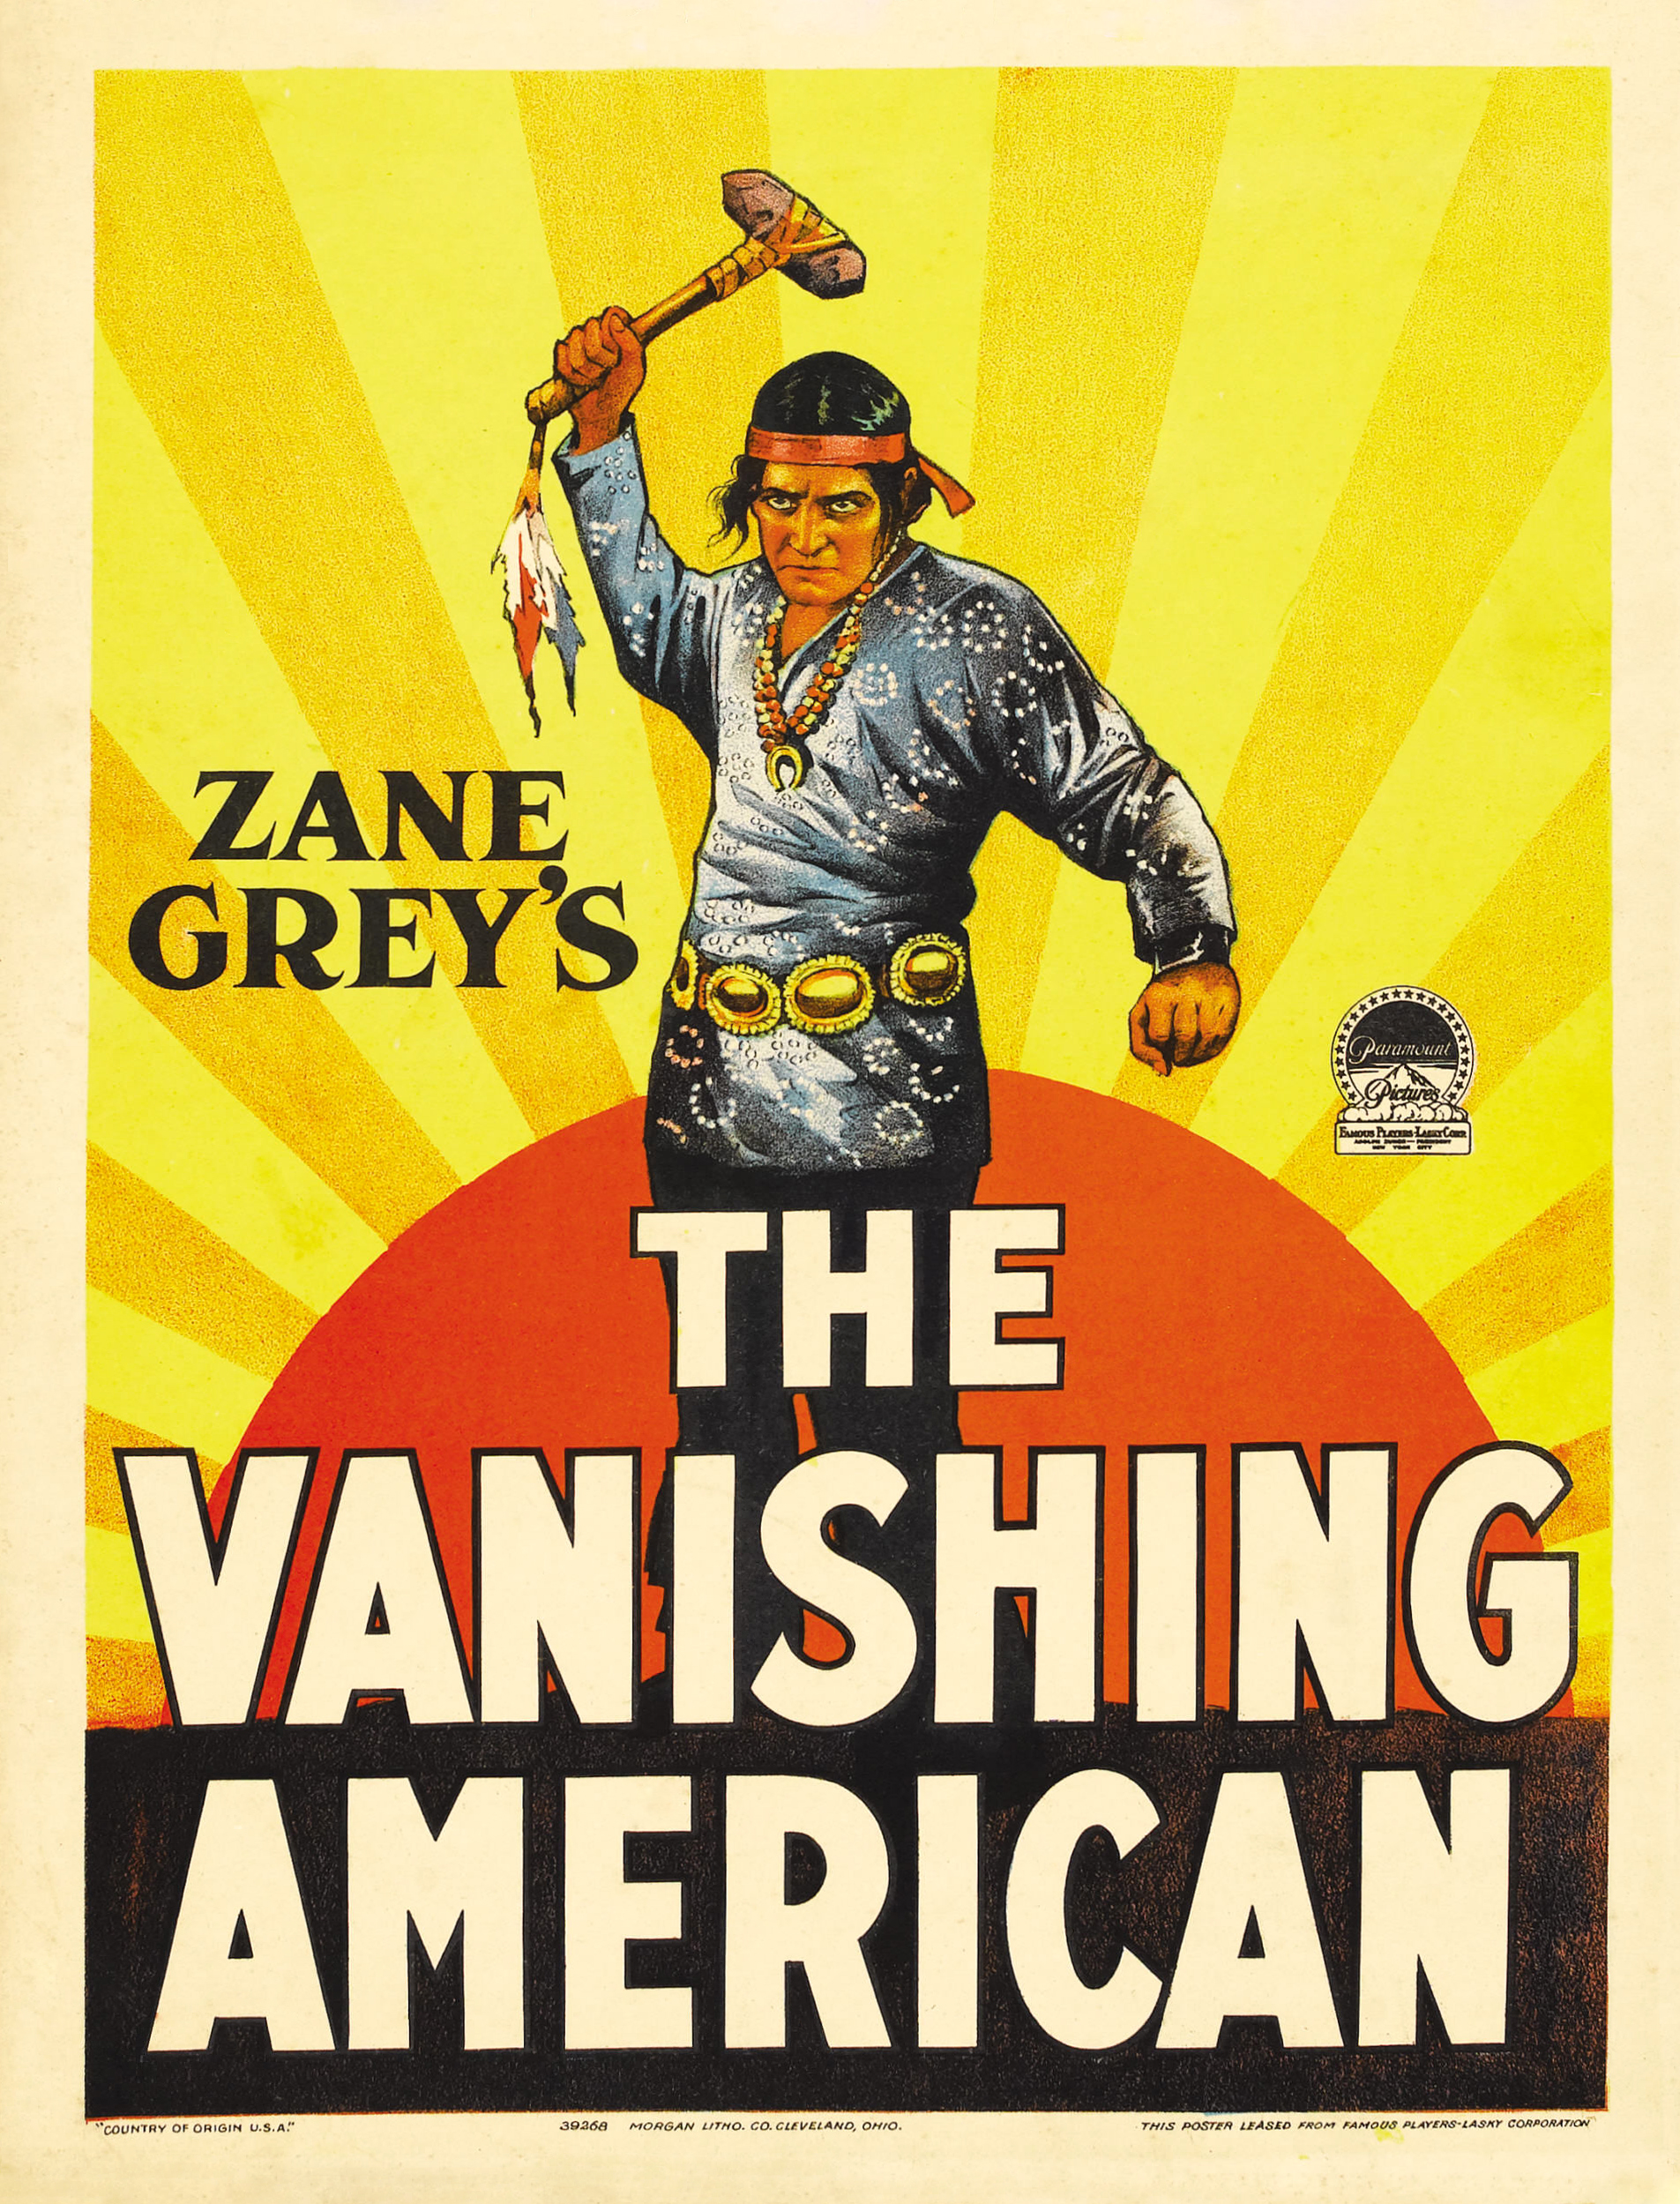 posters_File:Poster - Vanishing American, The (1925) 01.jpg - Wikimedia Commons